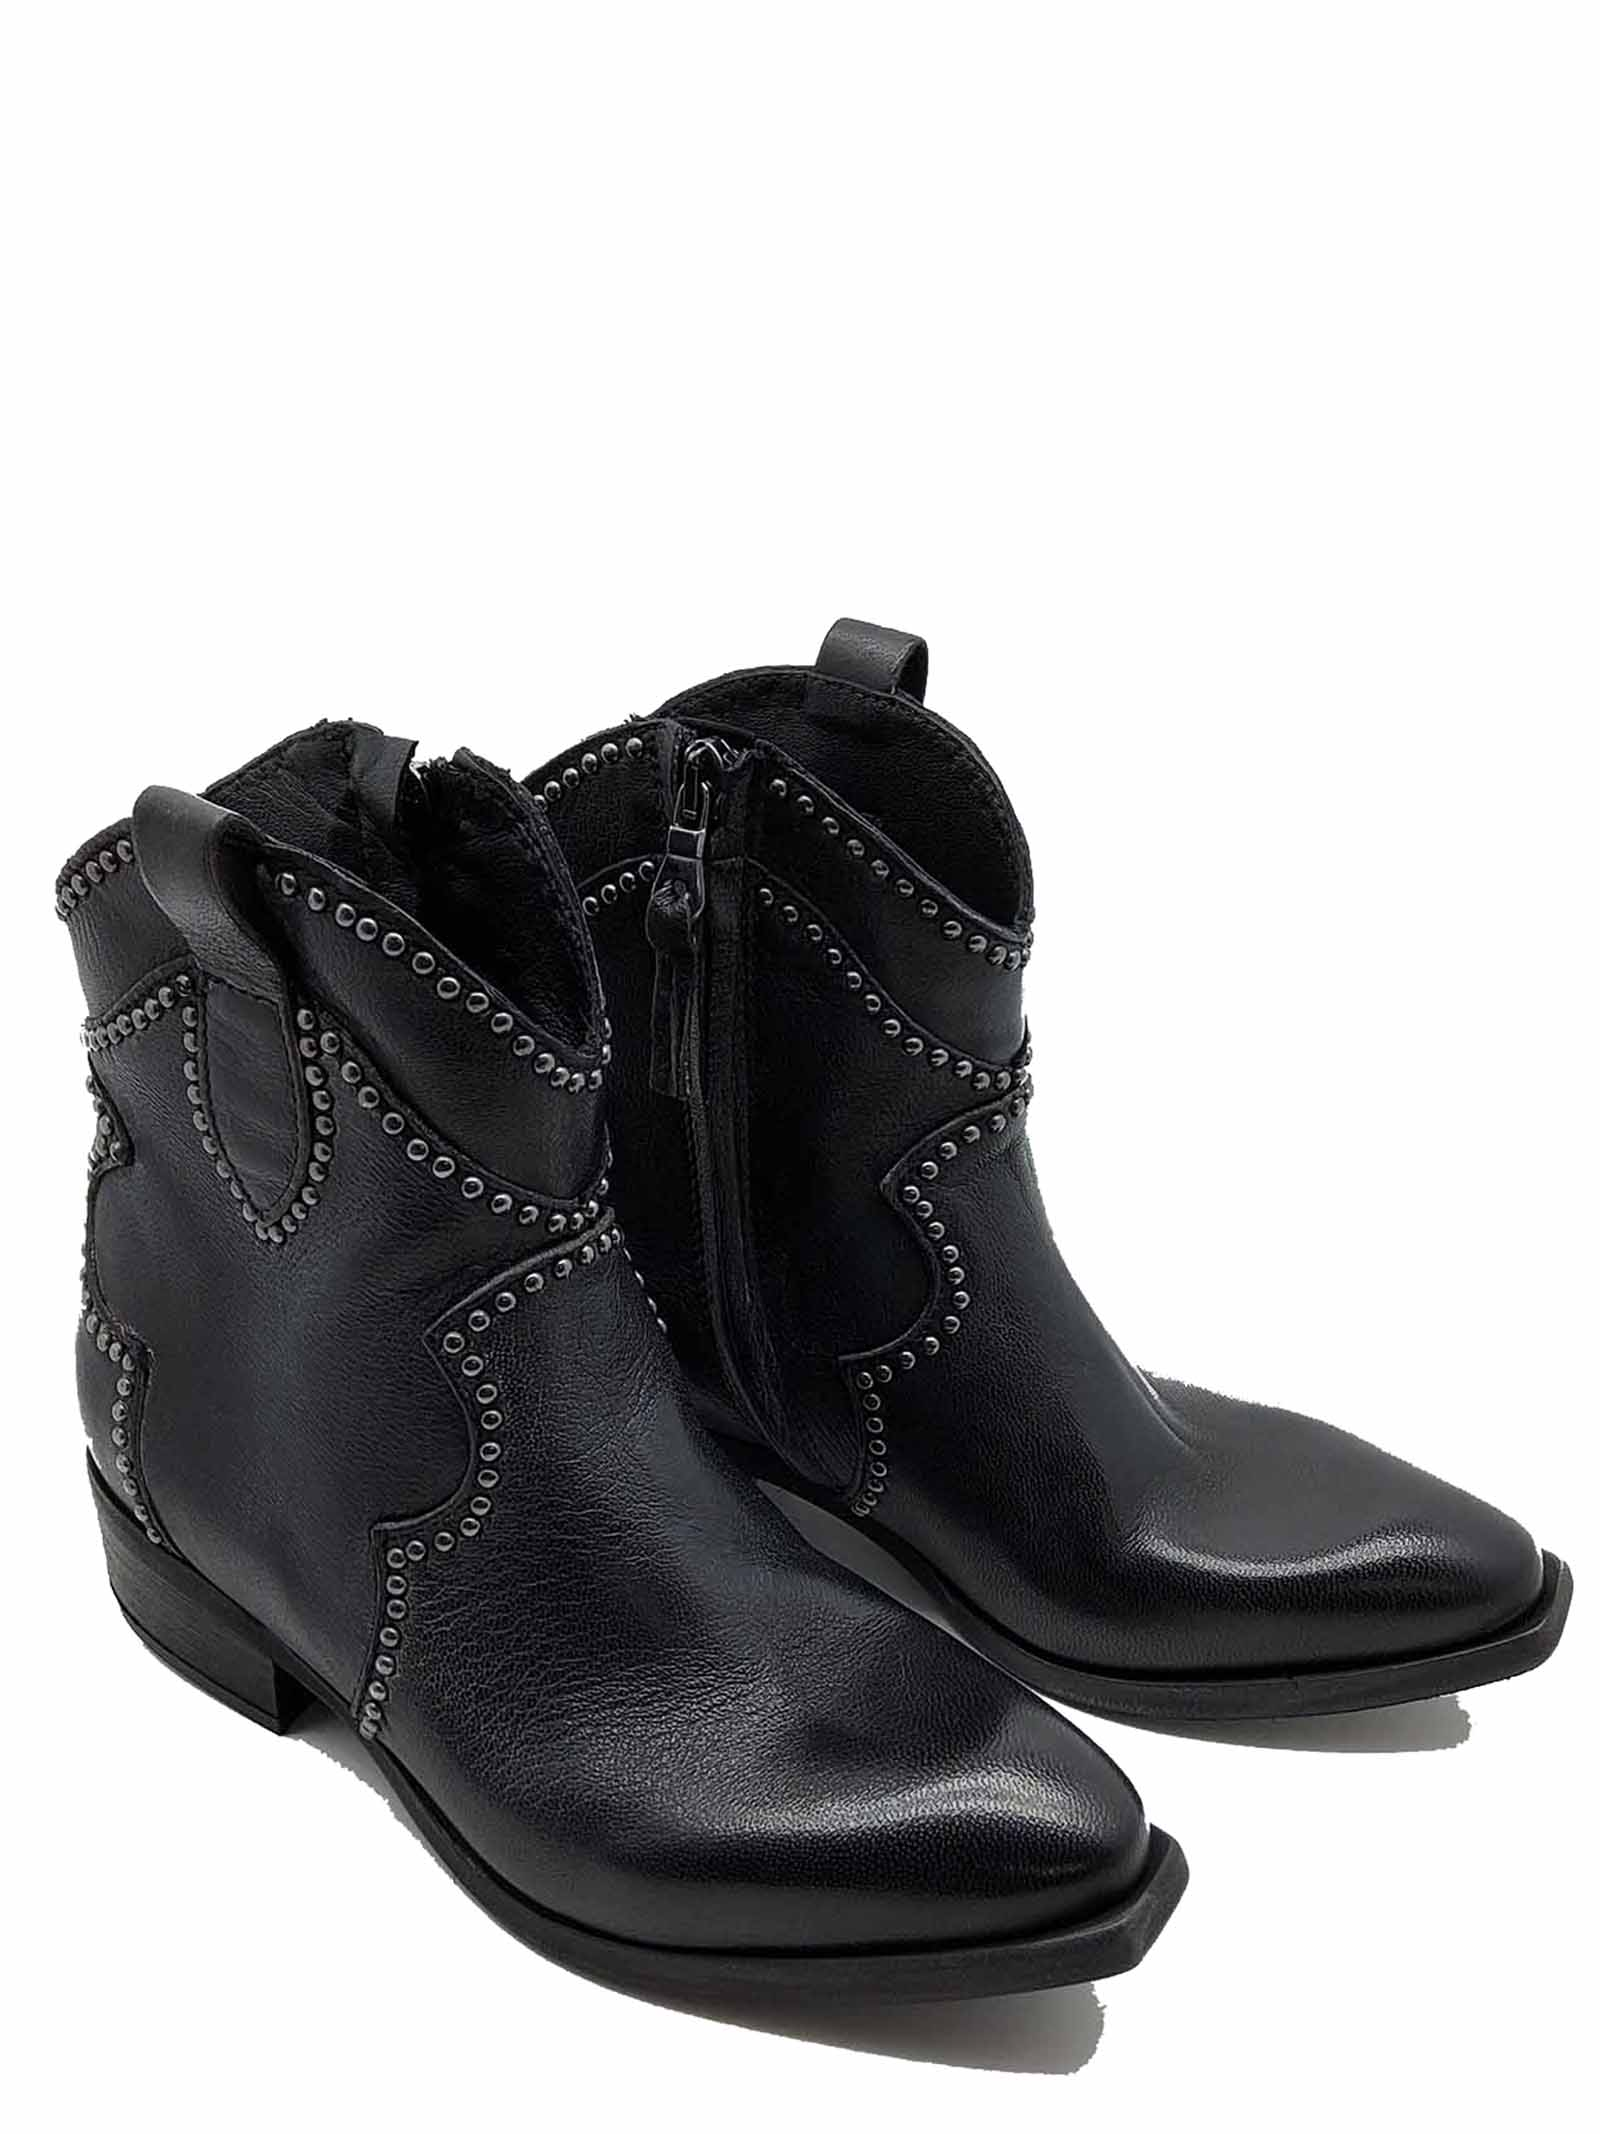 Women's Shoes Texan Ankle Boots In Black Leather With Studs Zoe | Ankle Boots | INVIT02001